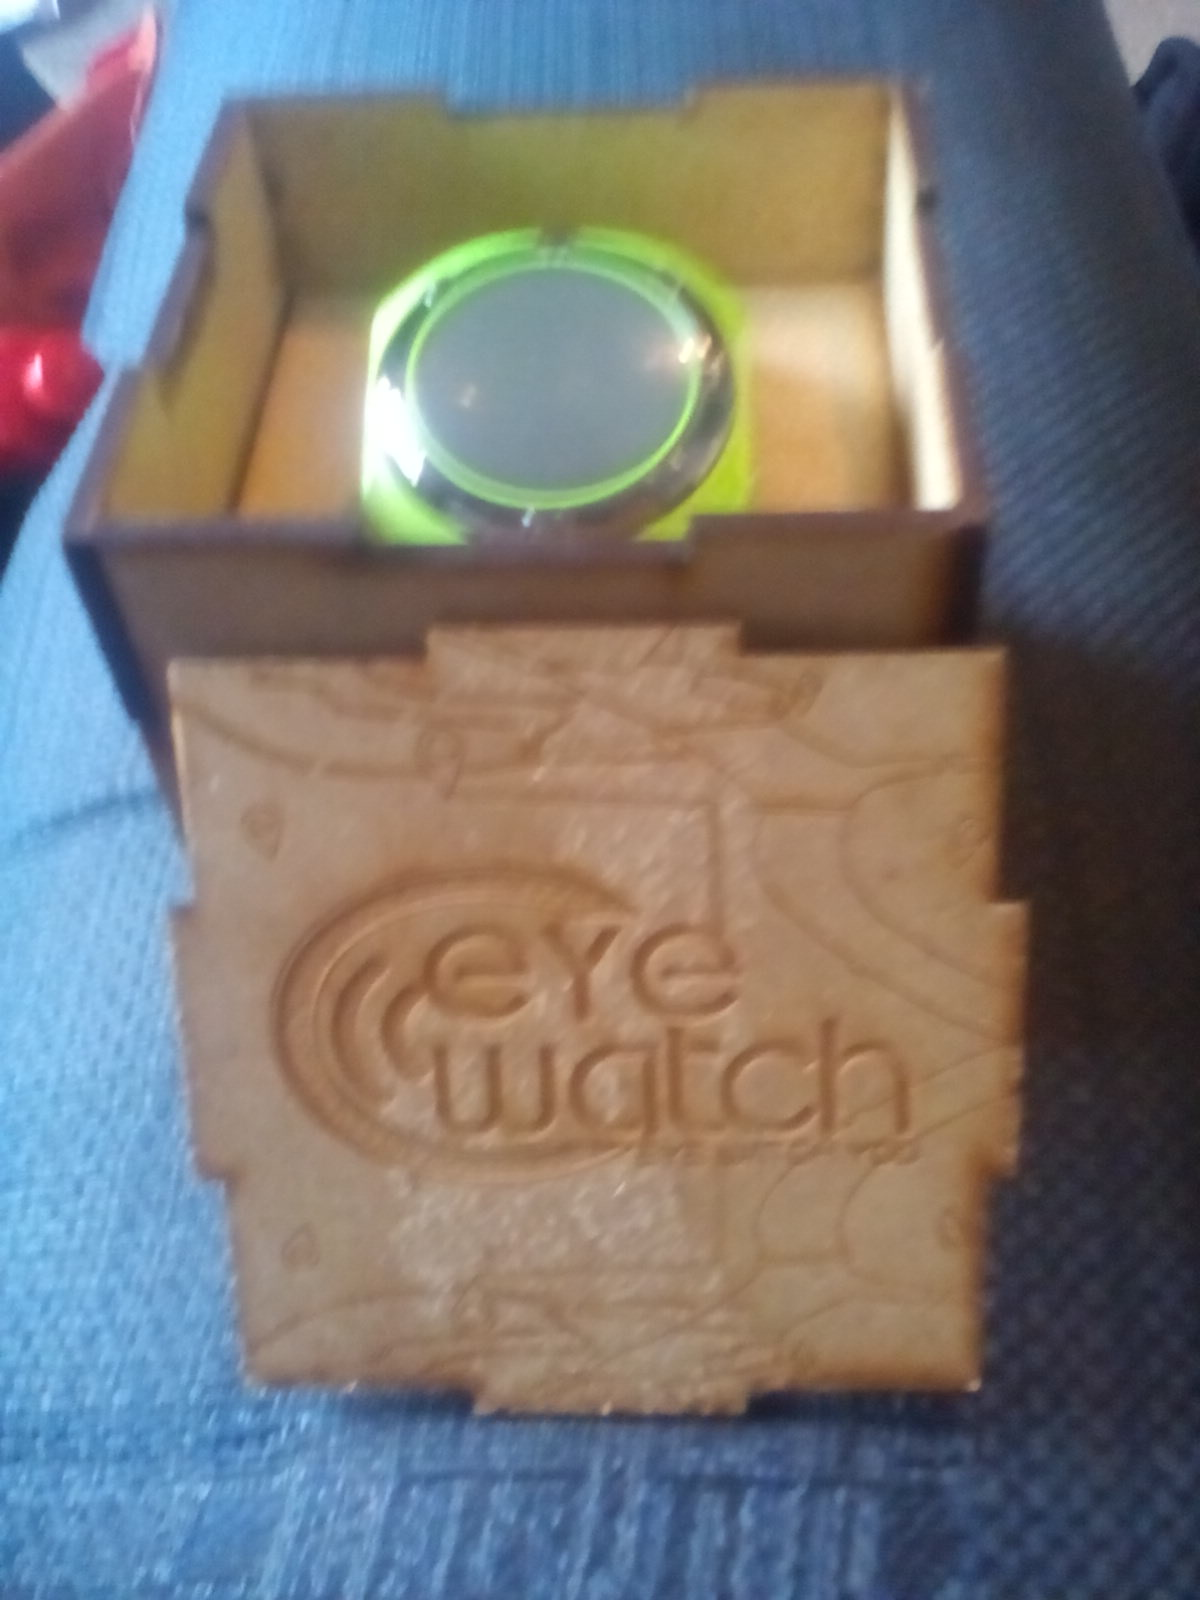 BRAND NEW EYE WATCH FOR SALE.